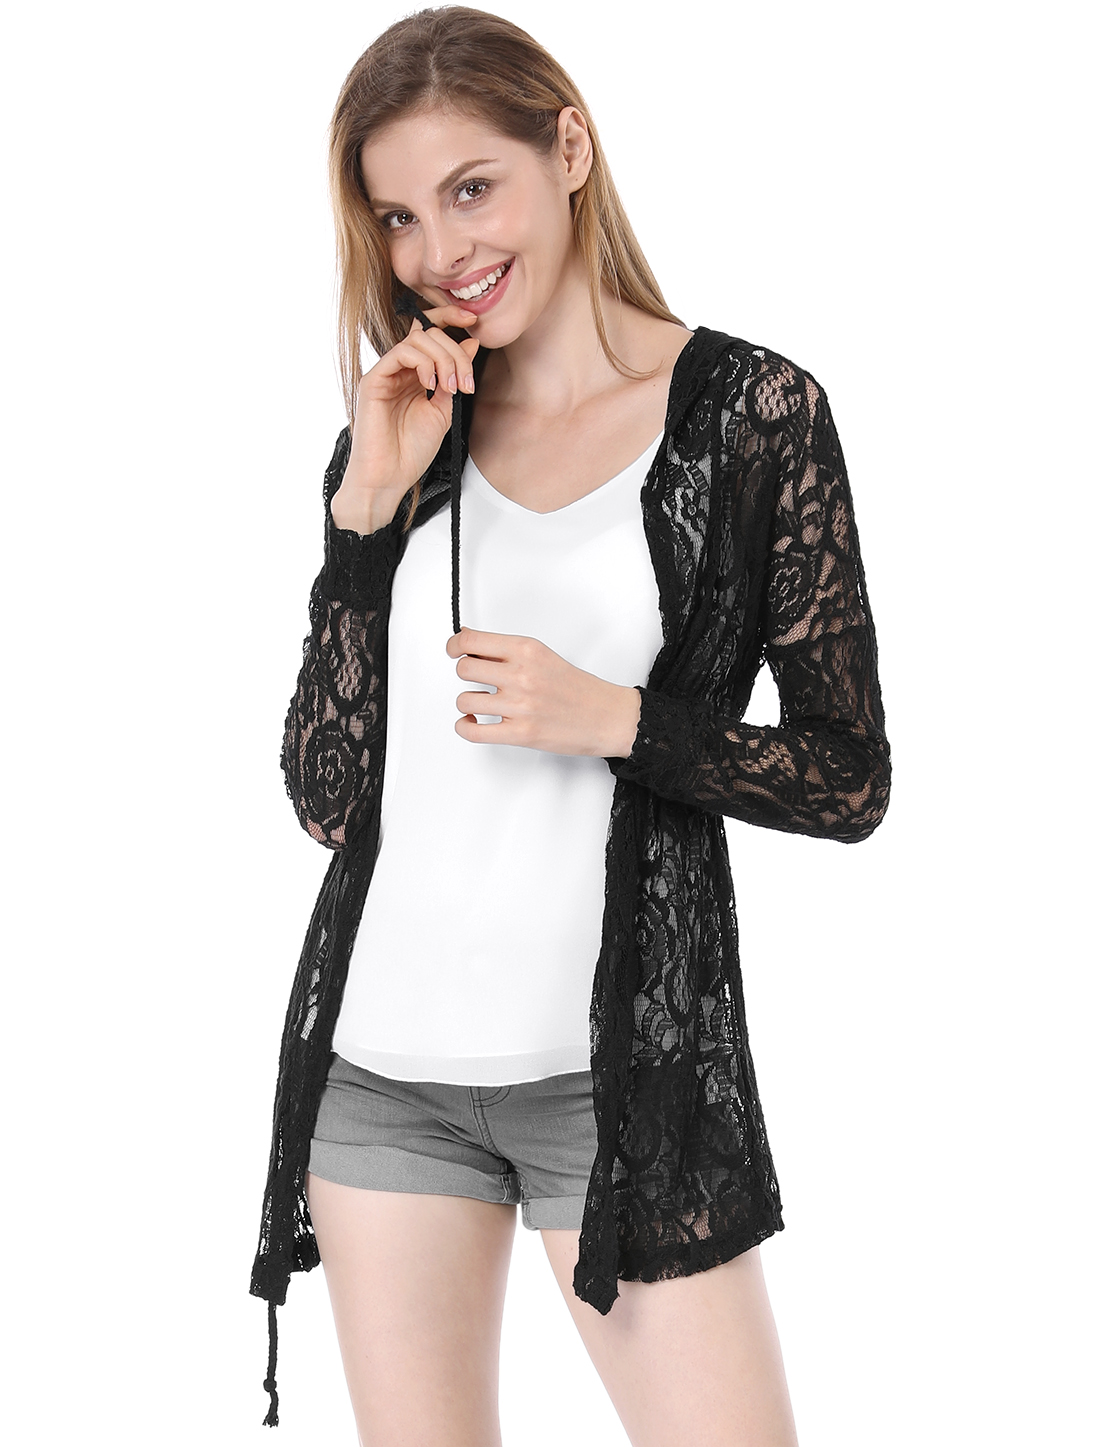 Woman New Fashion Hooded Design Long Sleeve Black Lace Coat M